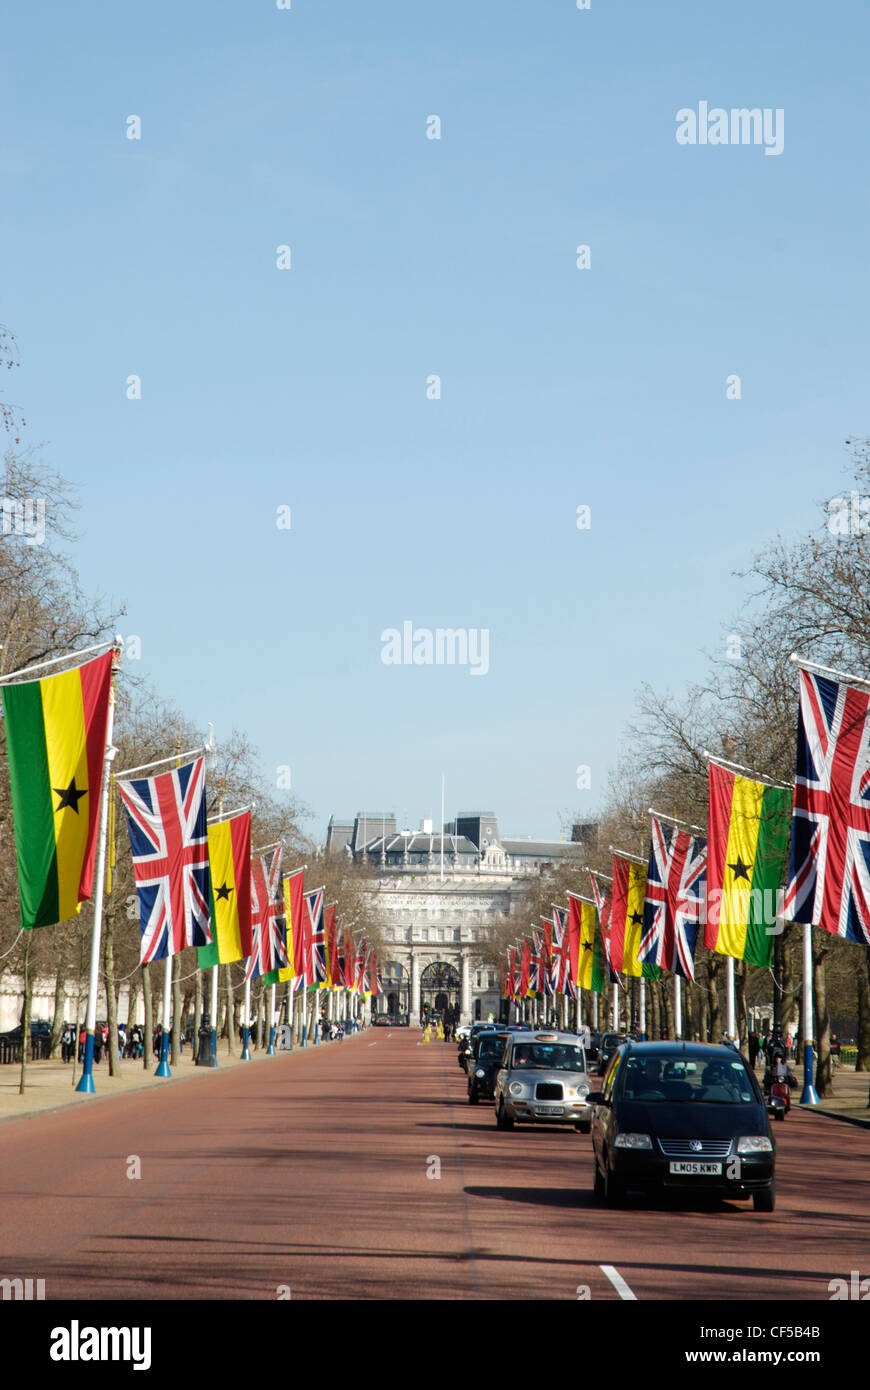 The Mall lined with Union Jack and European Union flags. - Stock Image